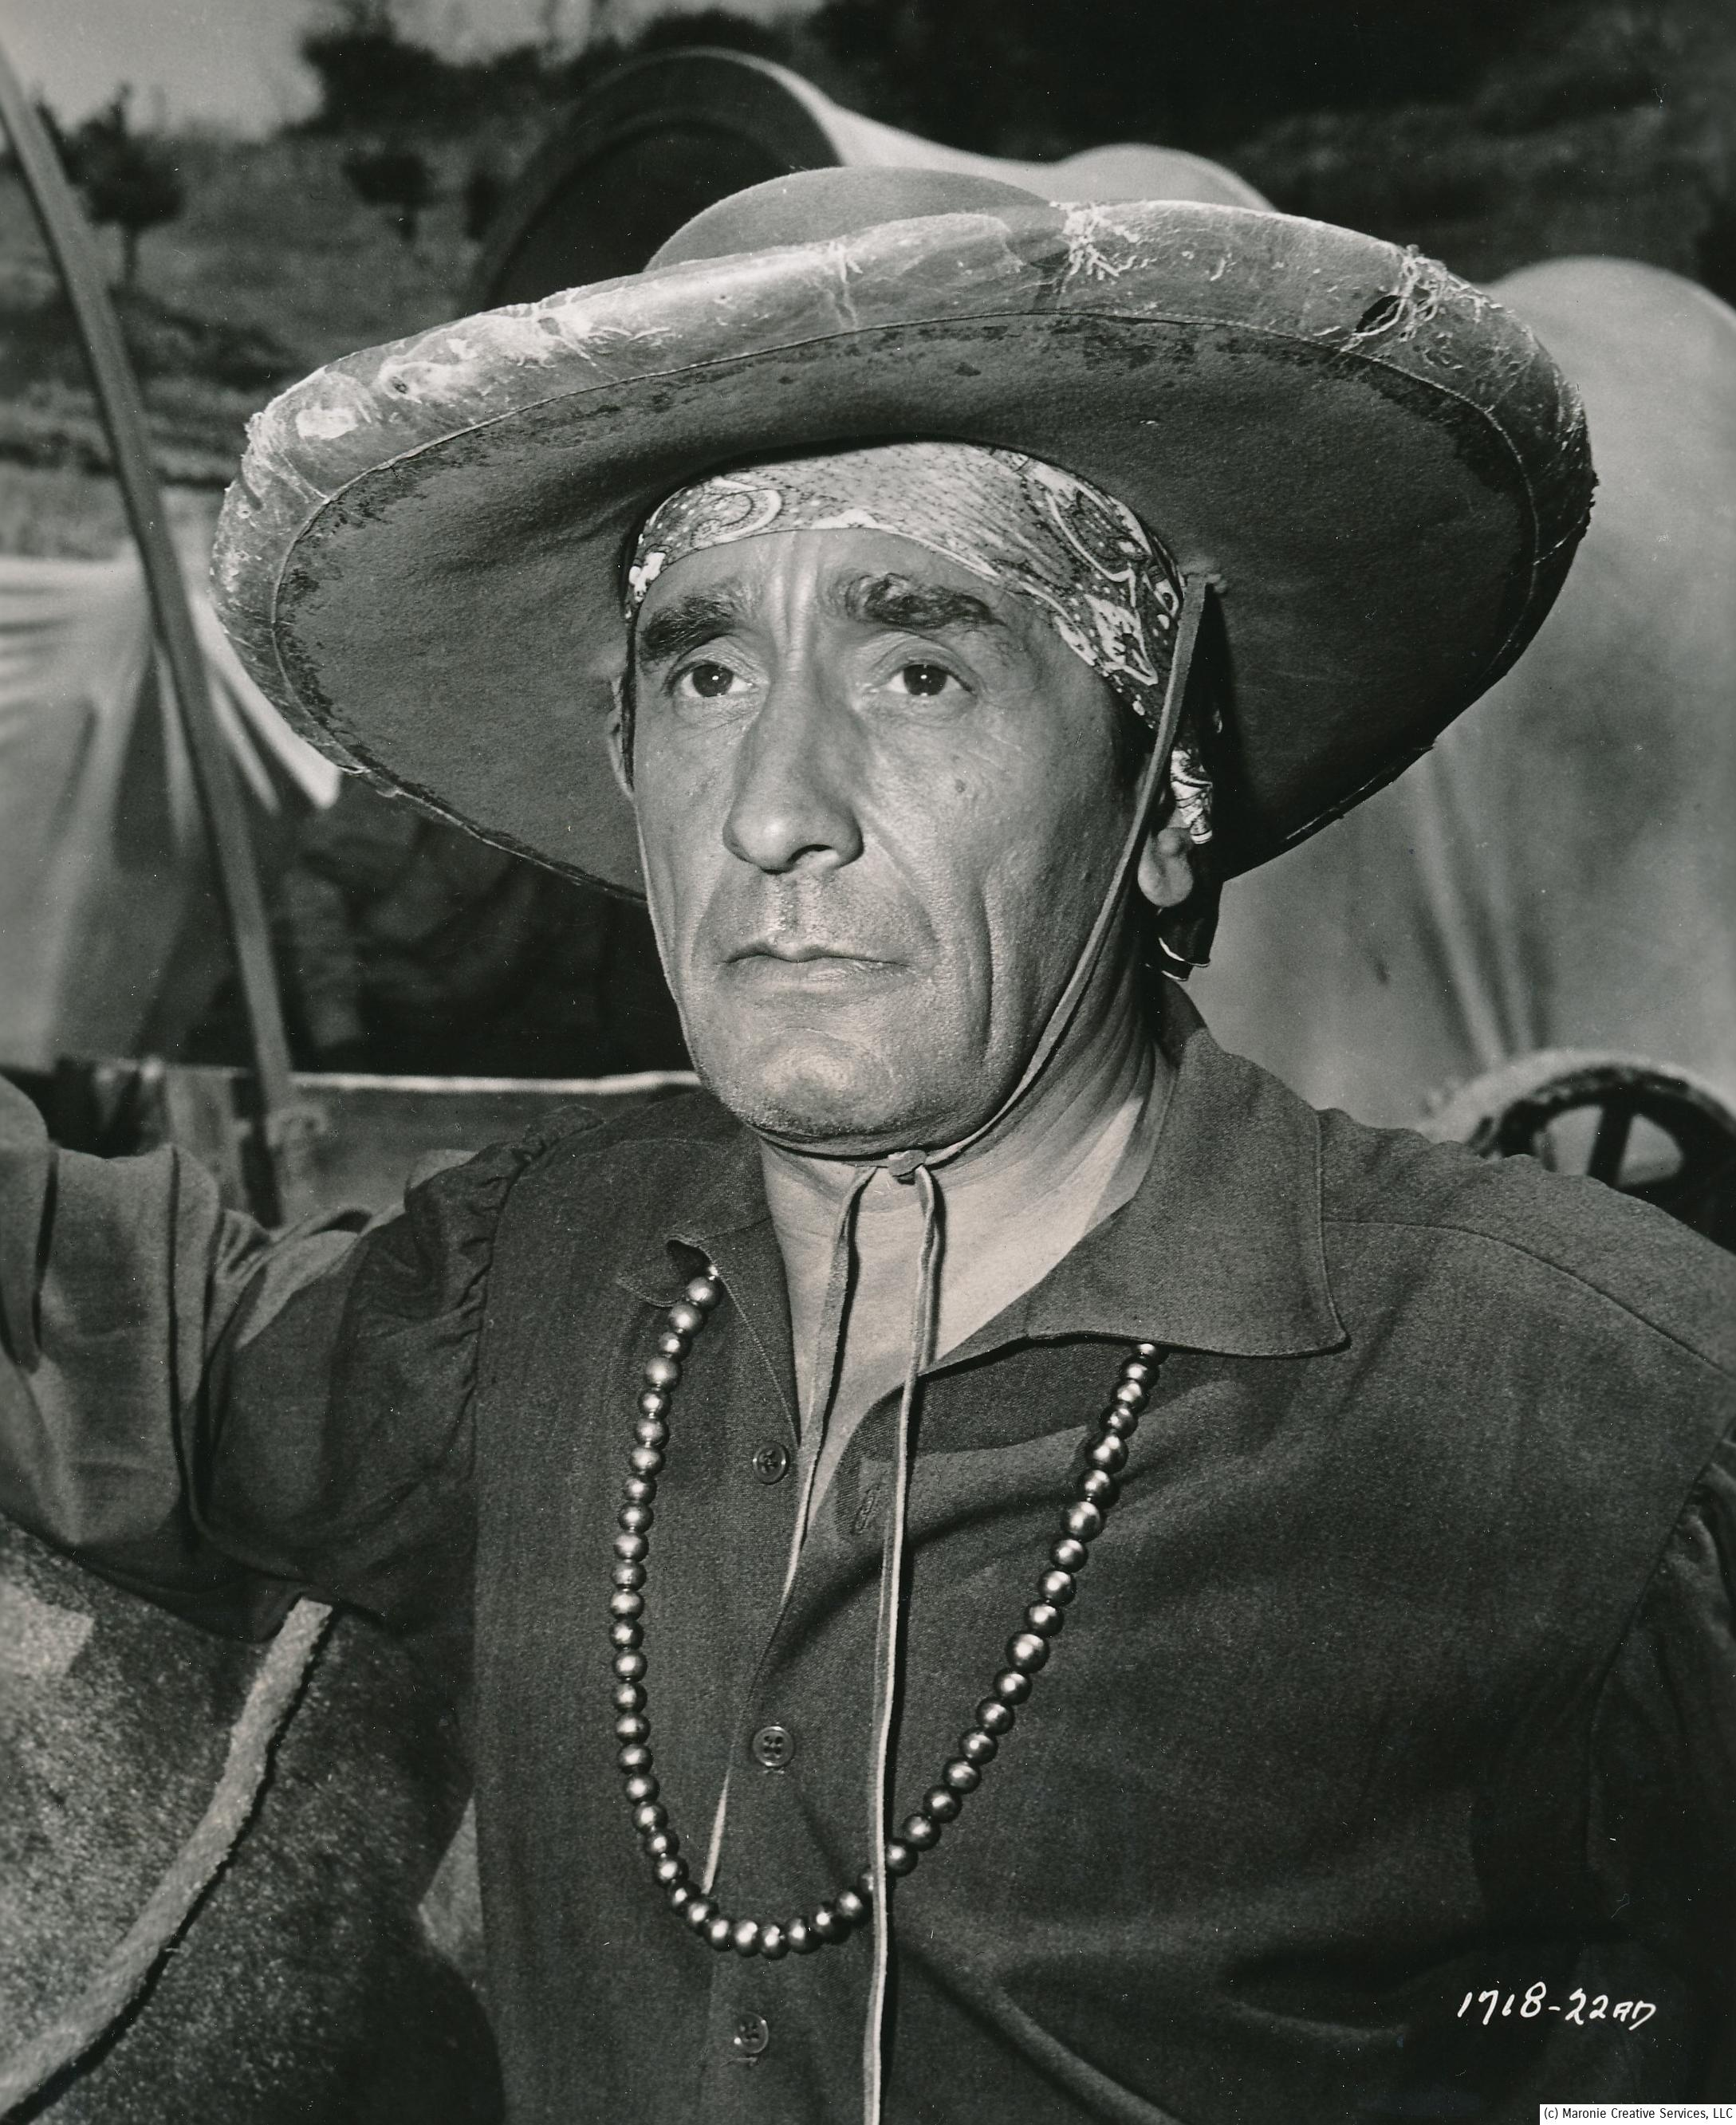 Victor Jory was one of cinema's most unforgettable faces. Not because he was particularly handsome, but more for his rough, angular features. He looks like he was born 100 years old. He worked constantly in films and TV. (c) Universal Studios